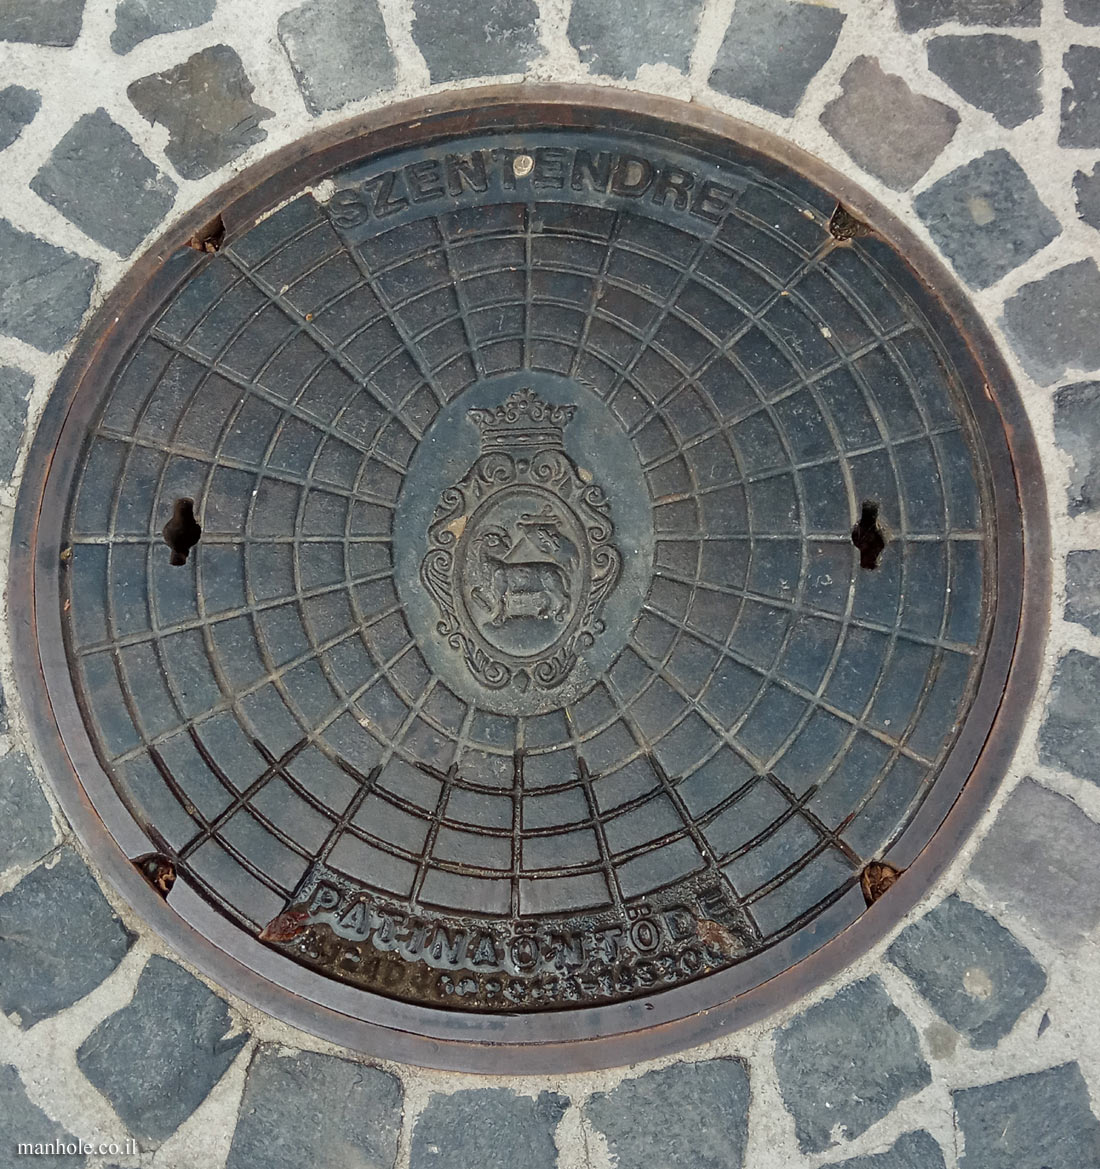 Szentendre - A lid with a network of circles and the city symbol in the center